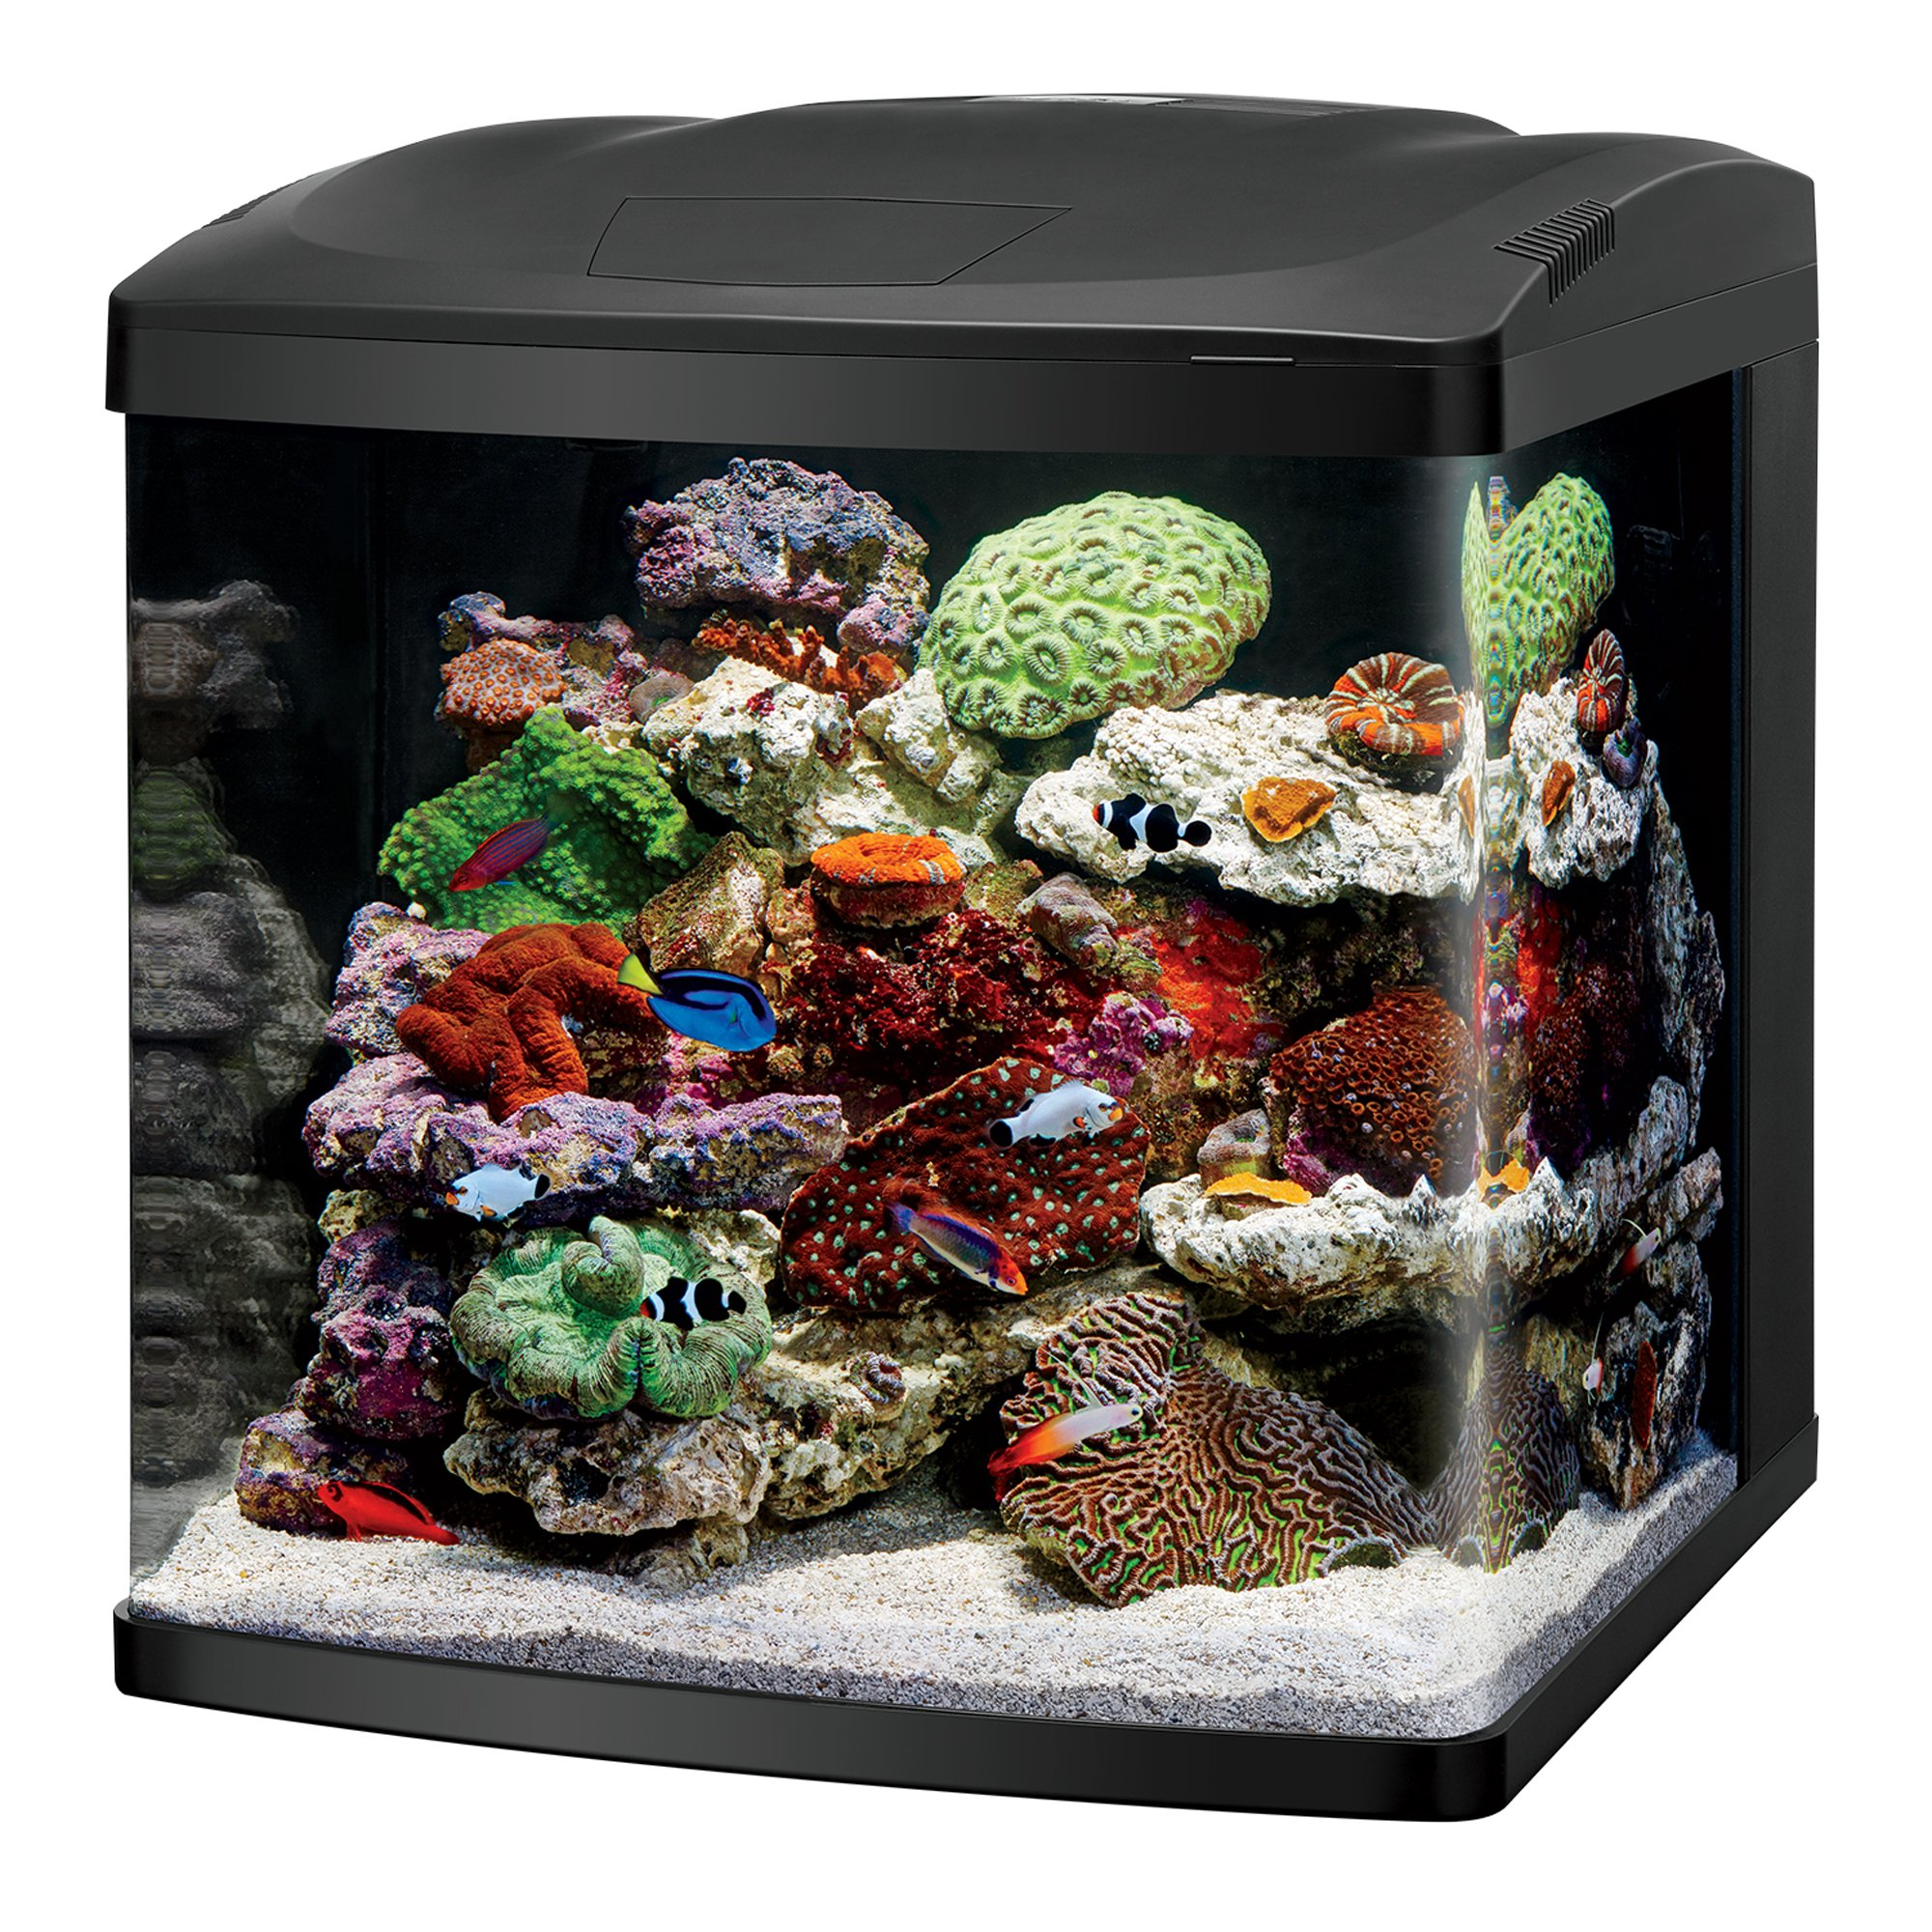 Coralife led biocube aquarium led petco for Marine fish tanks